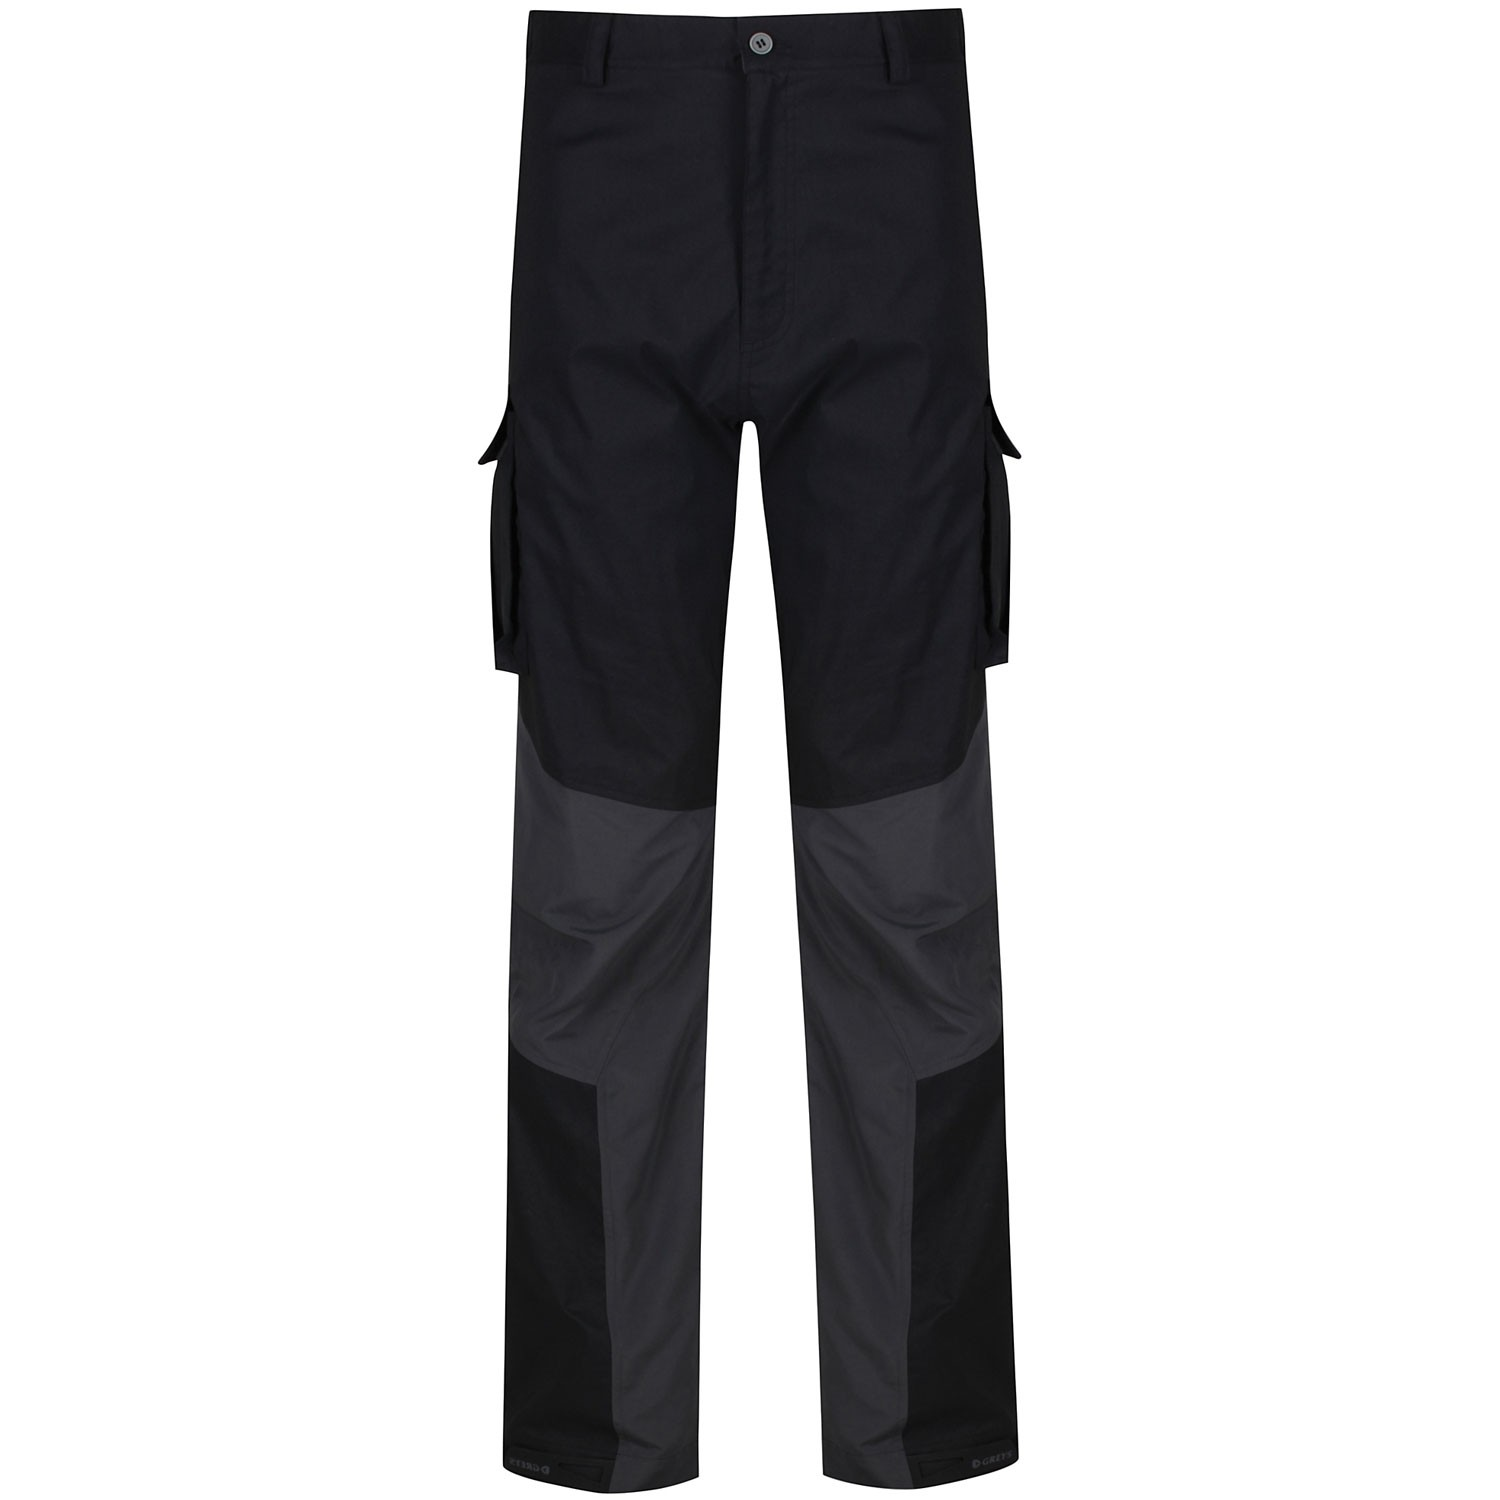 GREYS - Technical Fishing Trousers